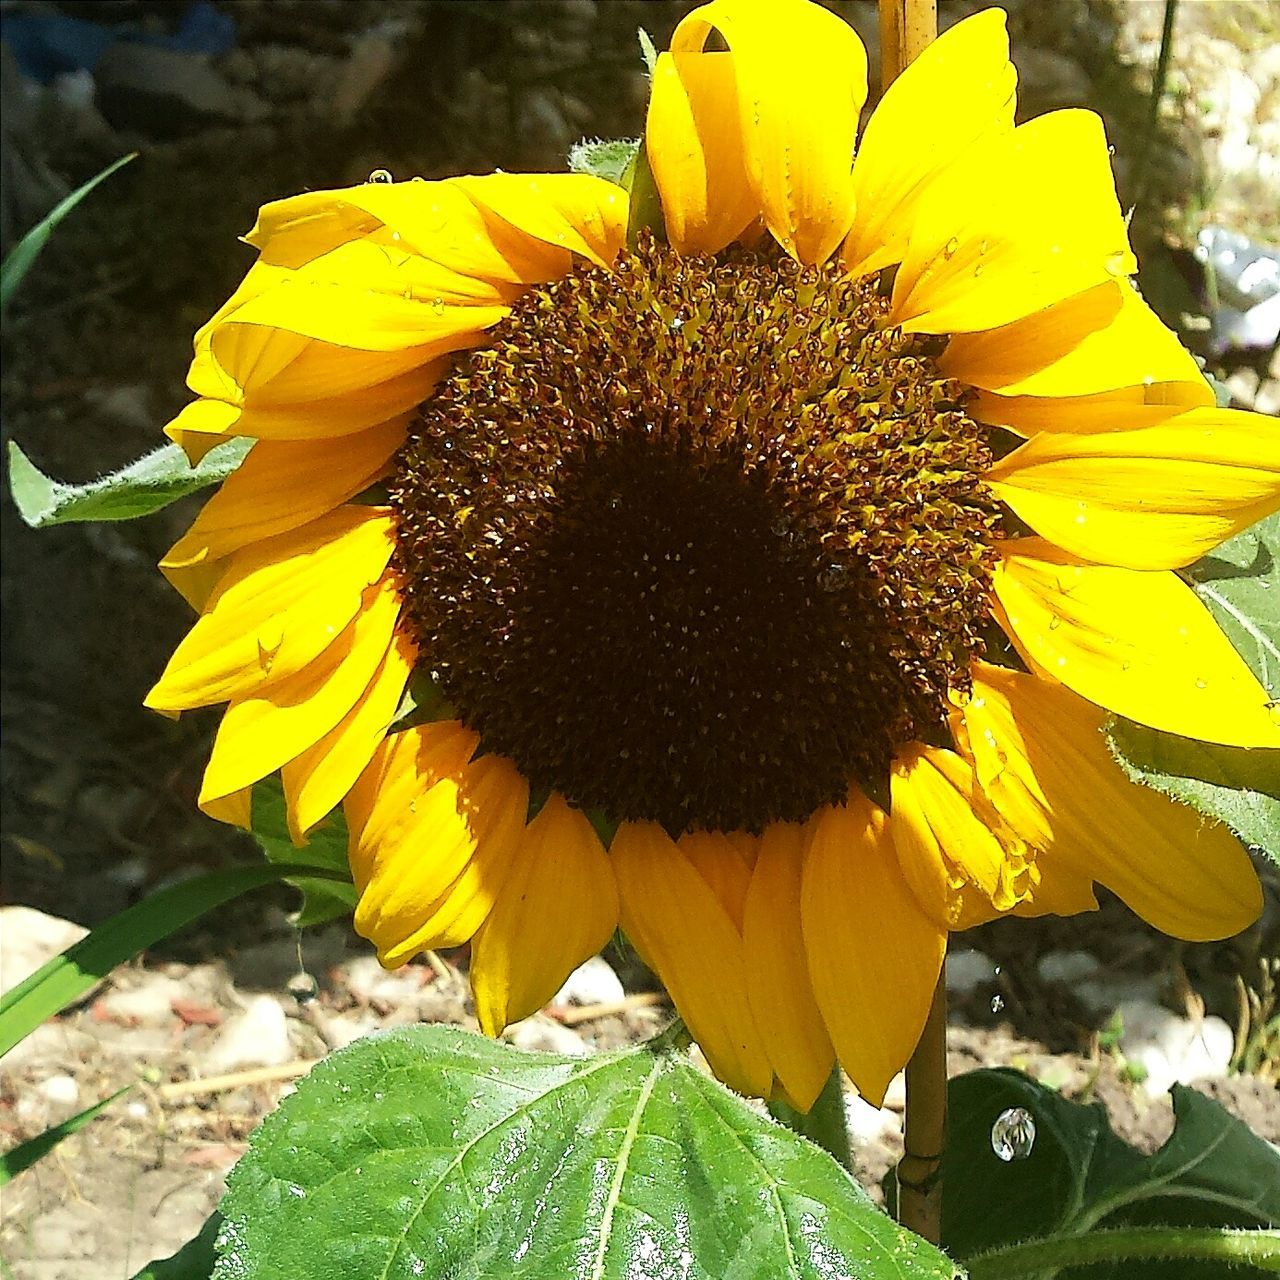 Check This Out Taking Photos The Essence Of Summer 🌞Beautiful Flowers Garden Photography🍃 Flower Collection Flowers_collection 💛👌Beautiful Nature Summertime Essence Of Summer Sunrays Morning Tournesol 🌻🌻🌻 Tournesoles